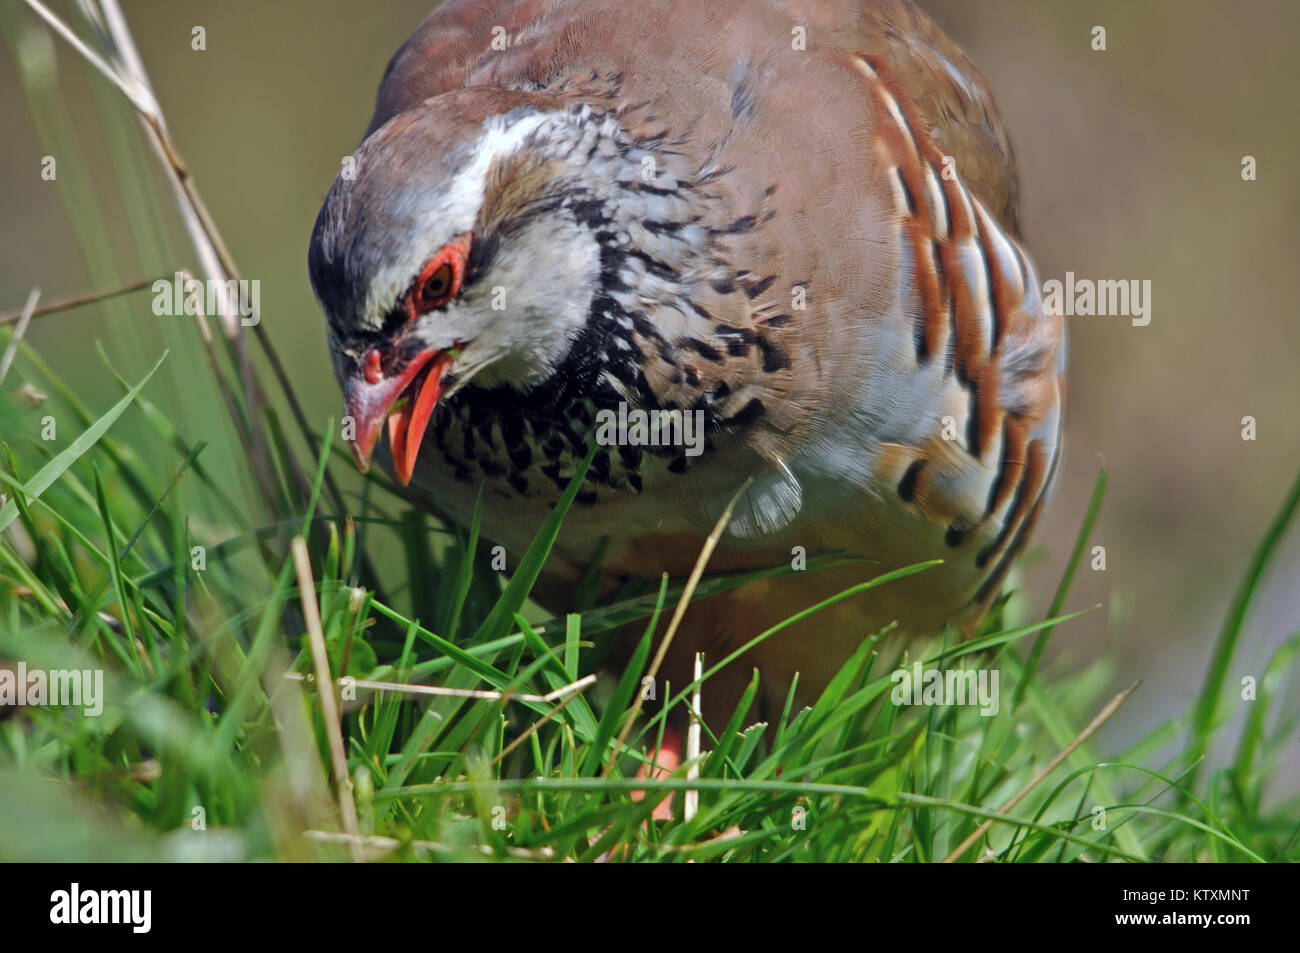 Red- legged partridge or Chukor, Alectoris chukor, foraging for food, New Zealand - Stock Image